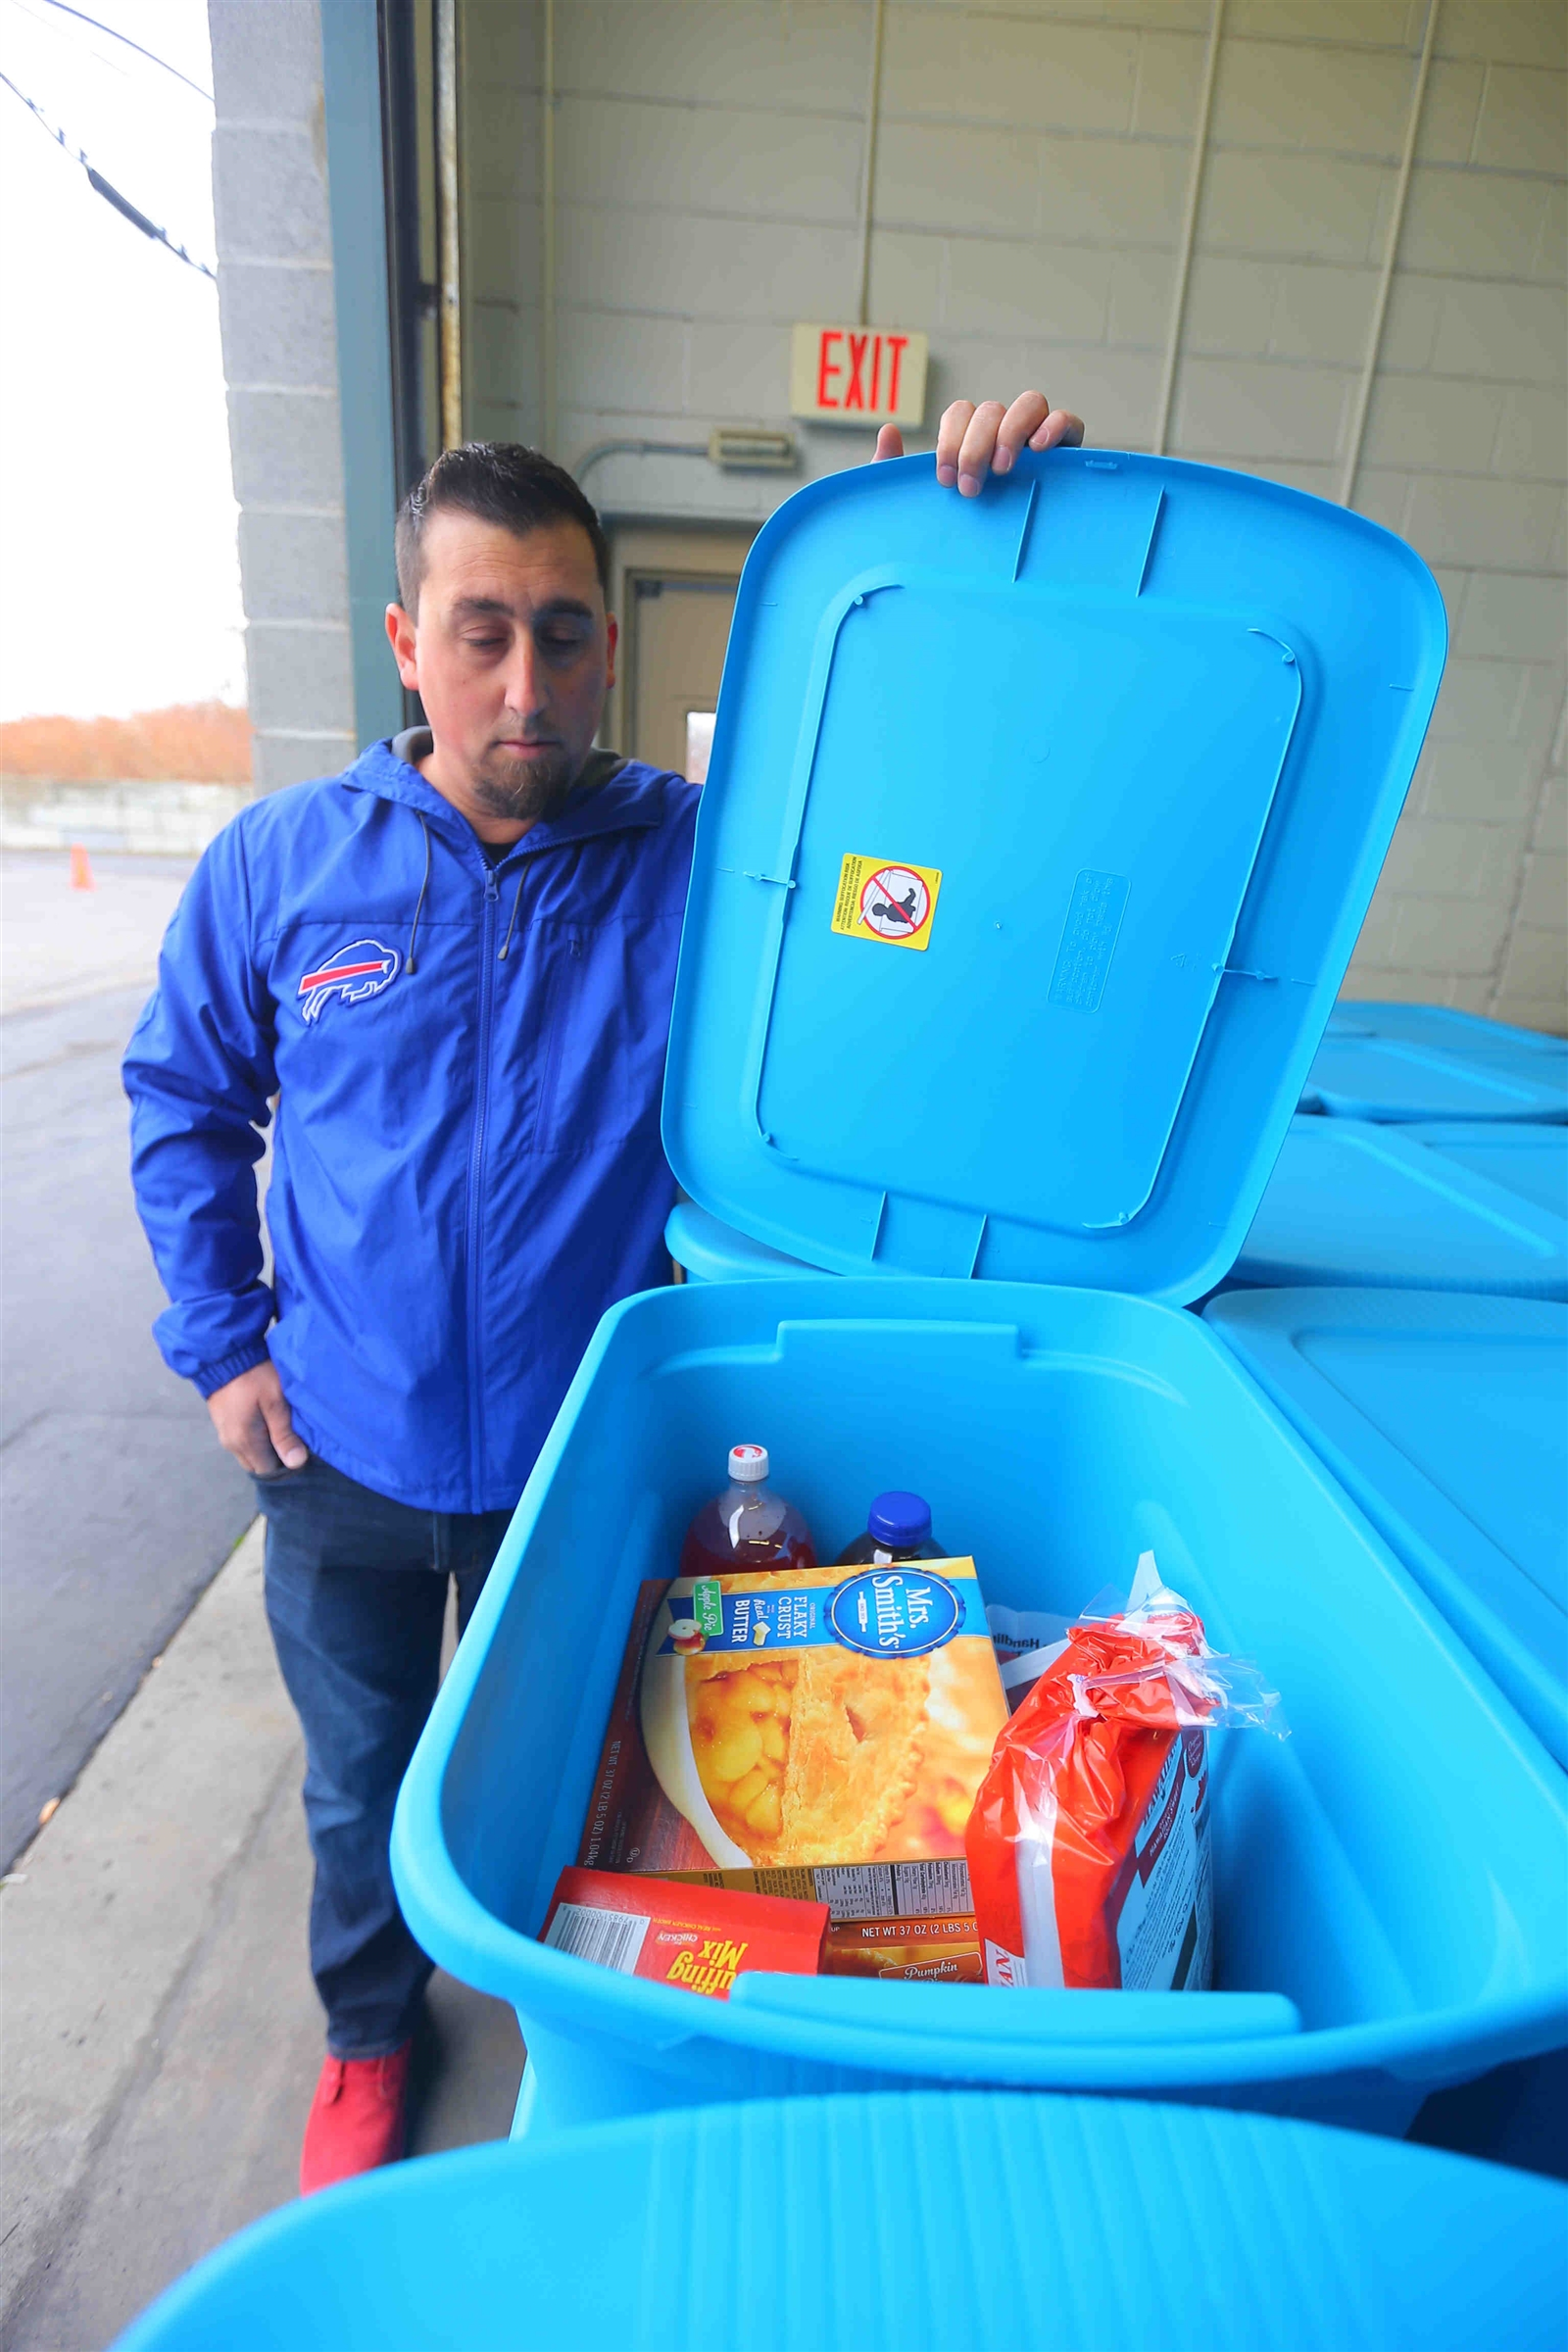 Steve Cutlip of the Buffalo Bills organization with some of the bins of food to be distributed by Bills players and personnel distributed Thanksgiving meals to families at the Food Bank Bank of WNY, in Buffalo on Tuesday, Nov. 14, 2017, as part of the annual Thanksgiving Blitz event.